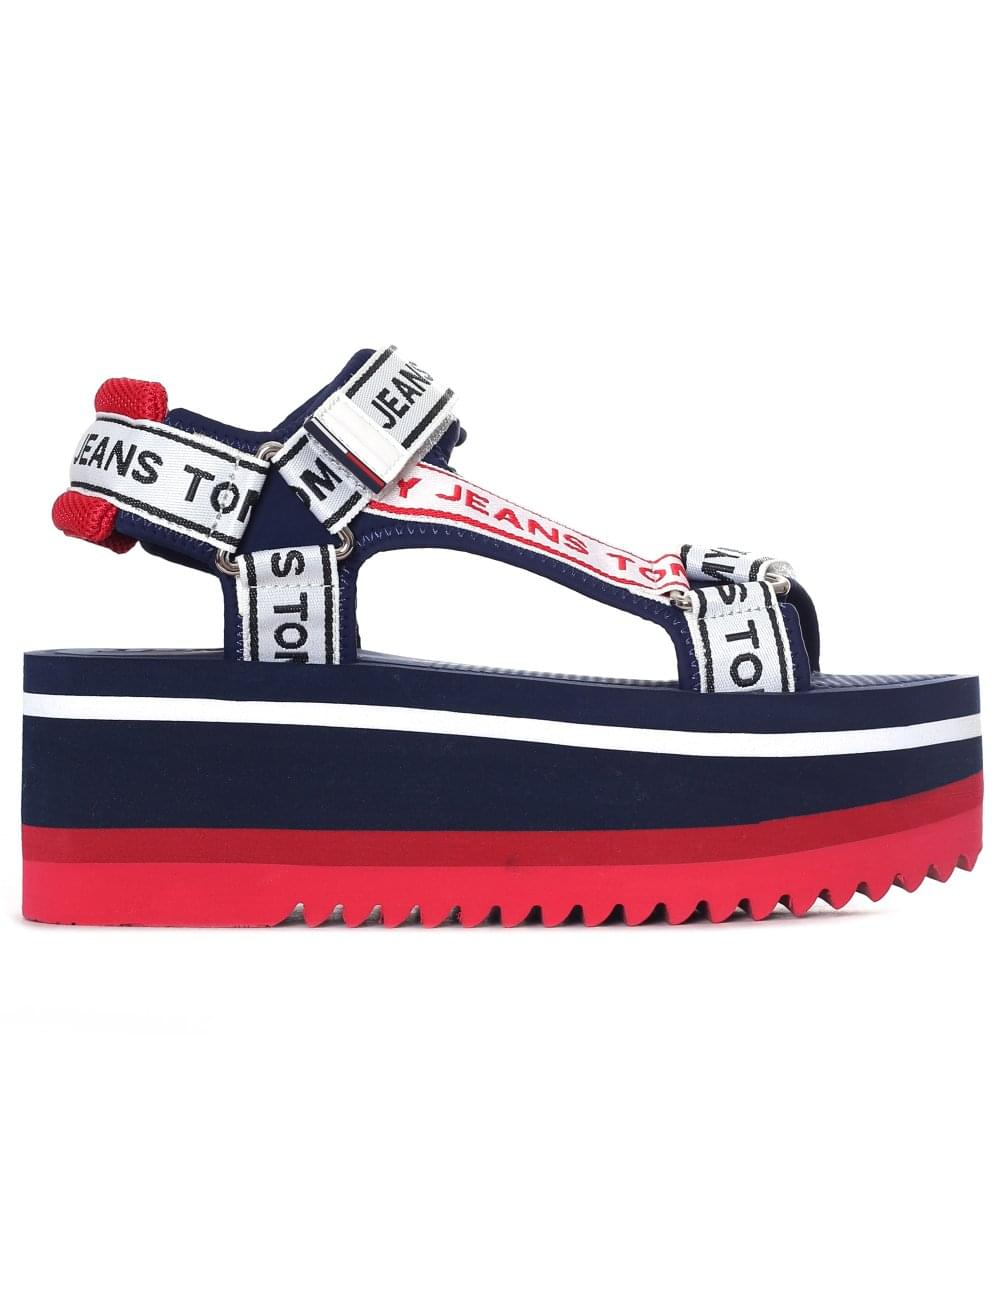 tommy hilfiger technical sandals off 52